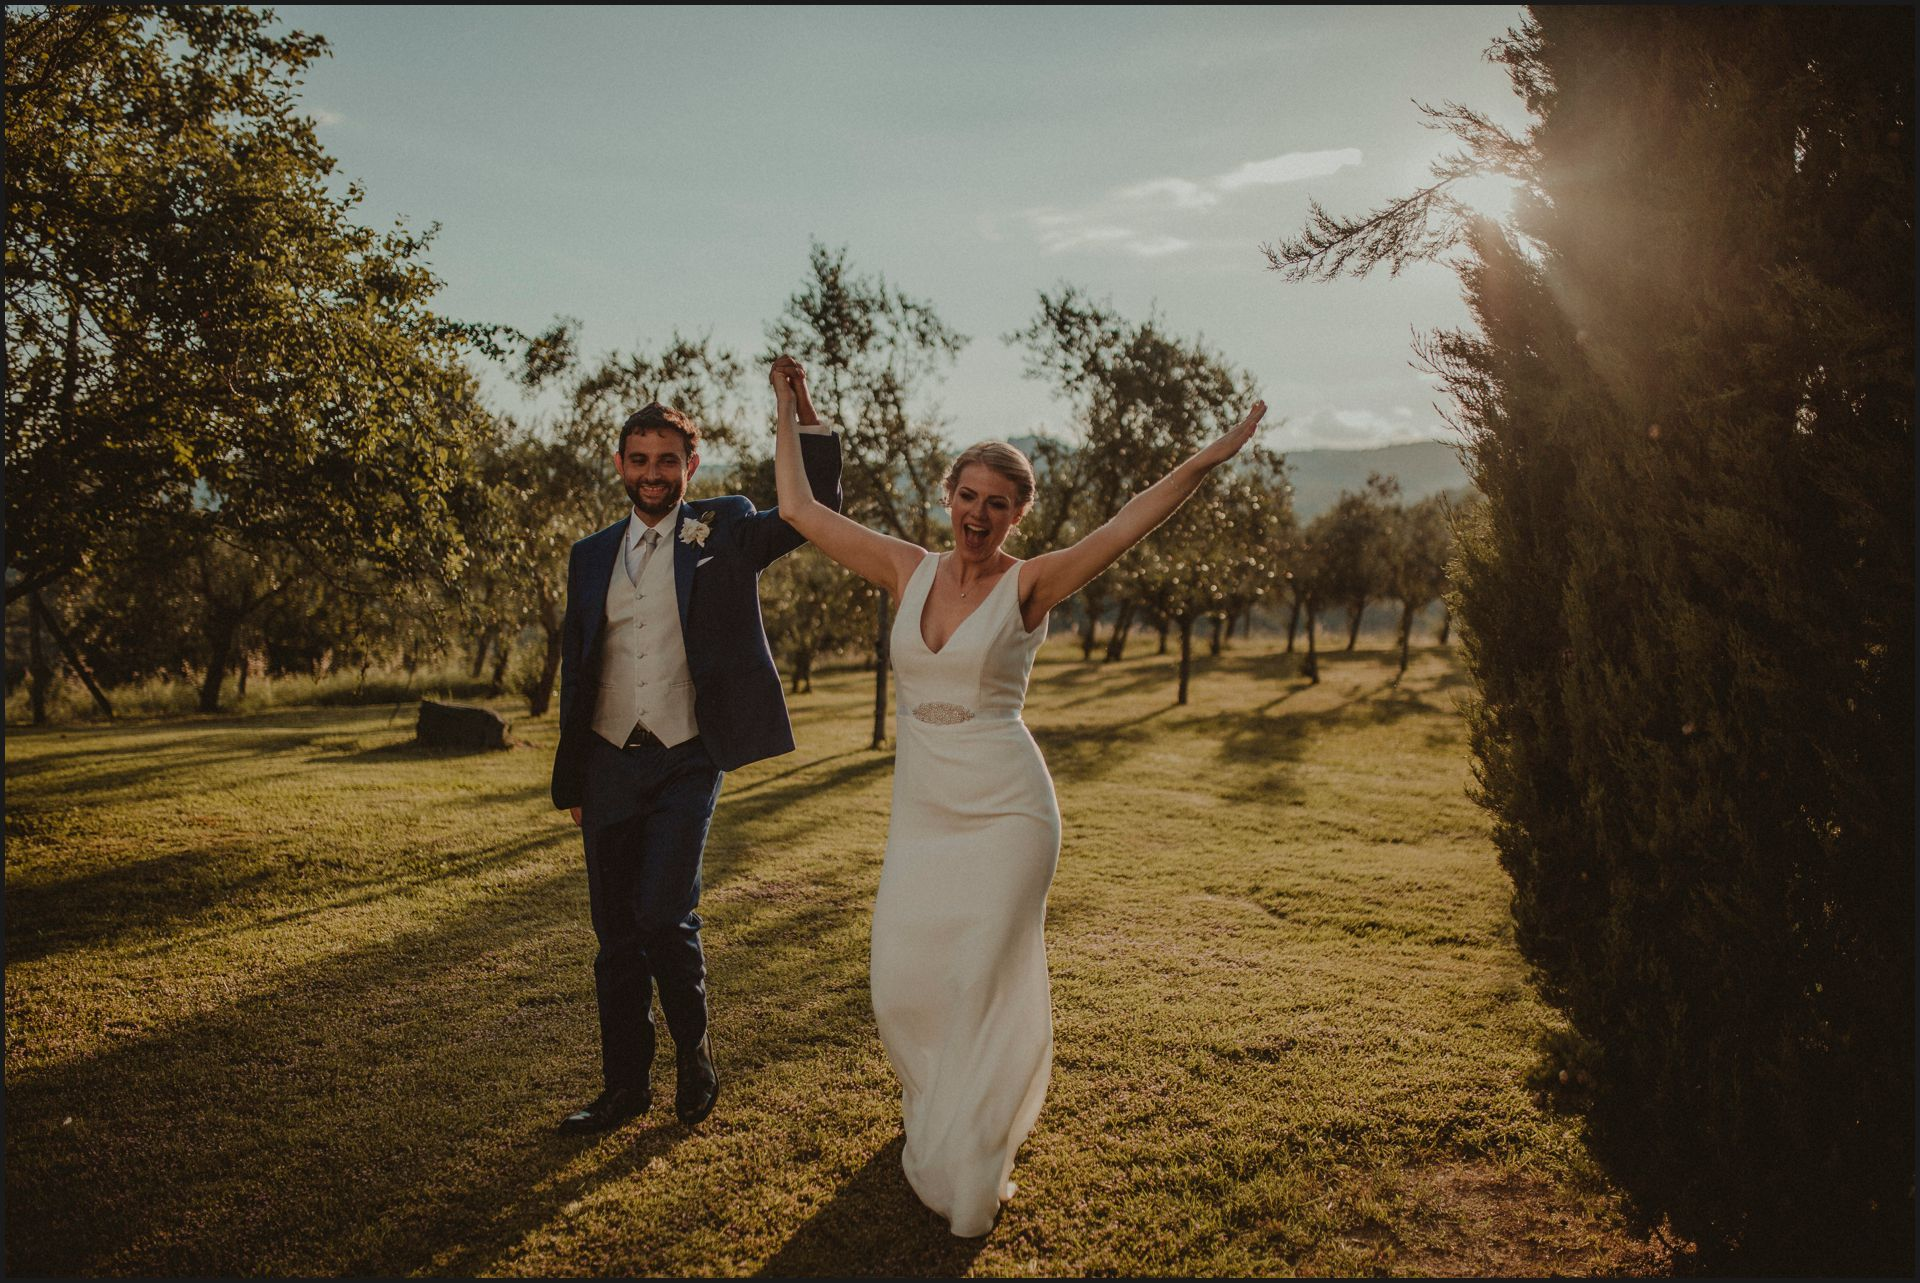 tenuta di canonica, umbria, wedding, bride, groom, love, funny moments